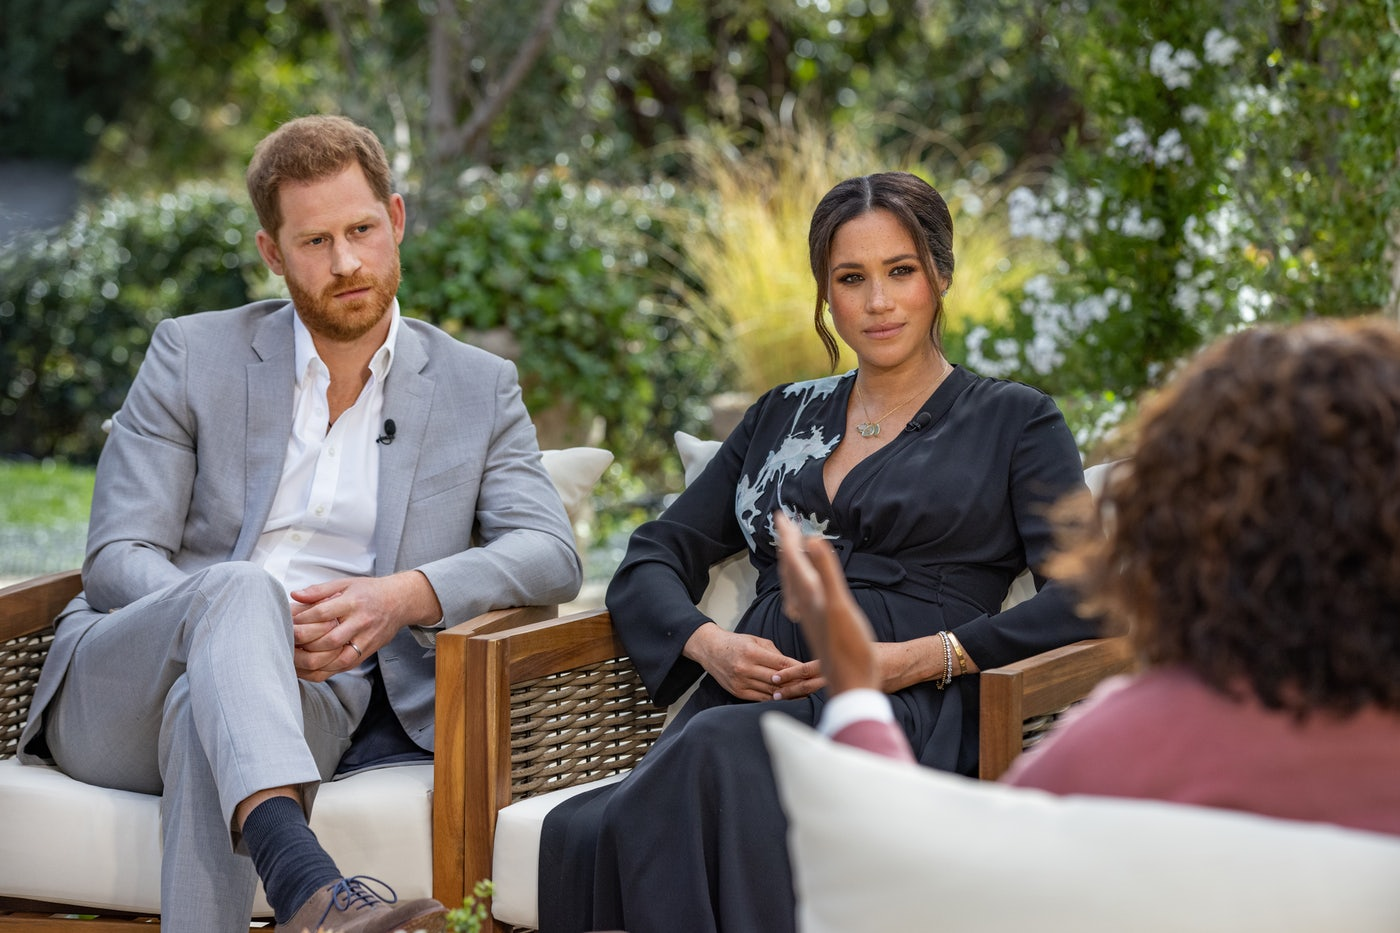 Oprah Winfrey interviews Prince Harry and Meghan Markle during her primetime television special.